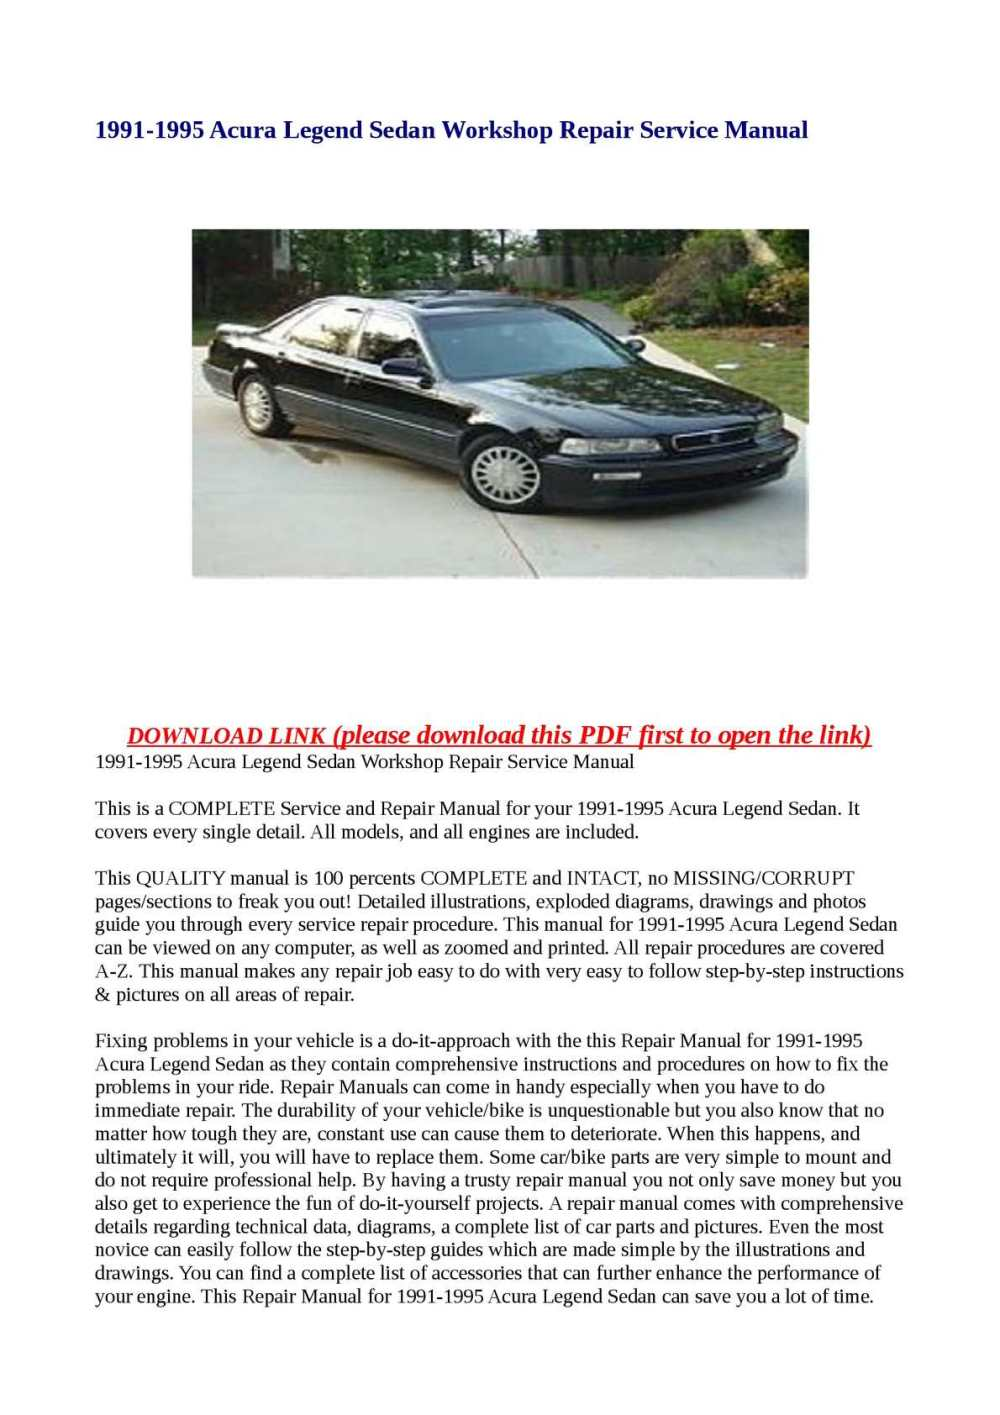 medium resolution of acura legend repair manual ebook hitch currently at thediyhelpers find great deals on ebay 2005 rl using an inexpensive way keep working properly